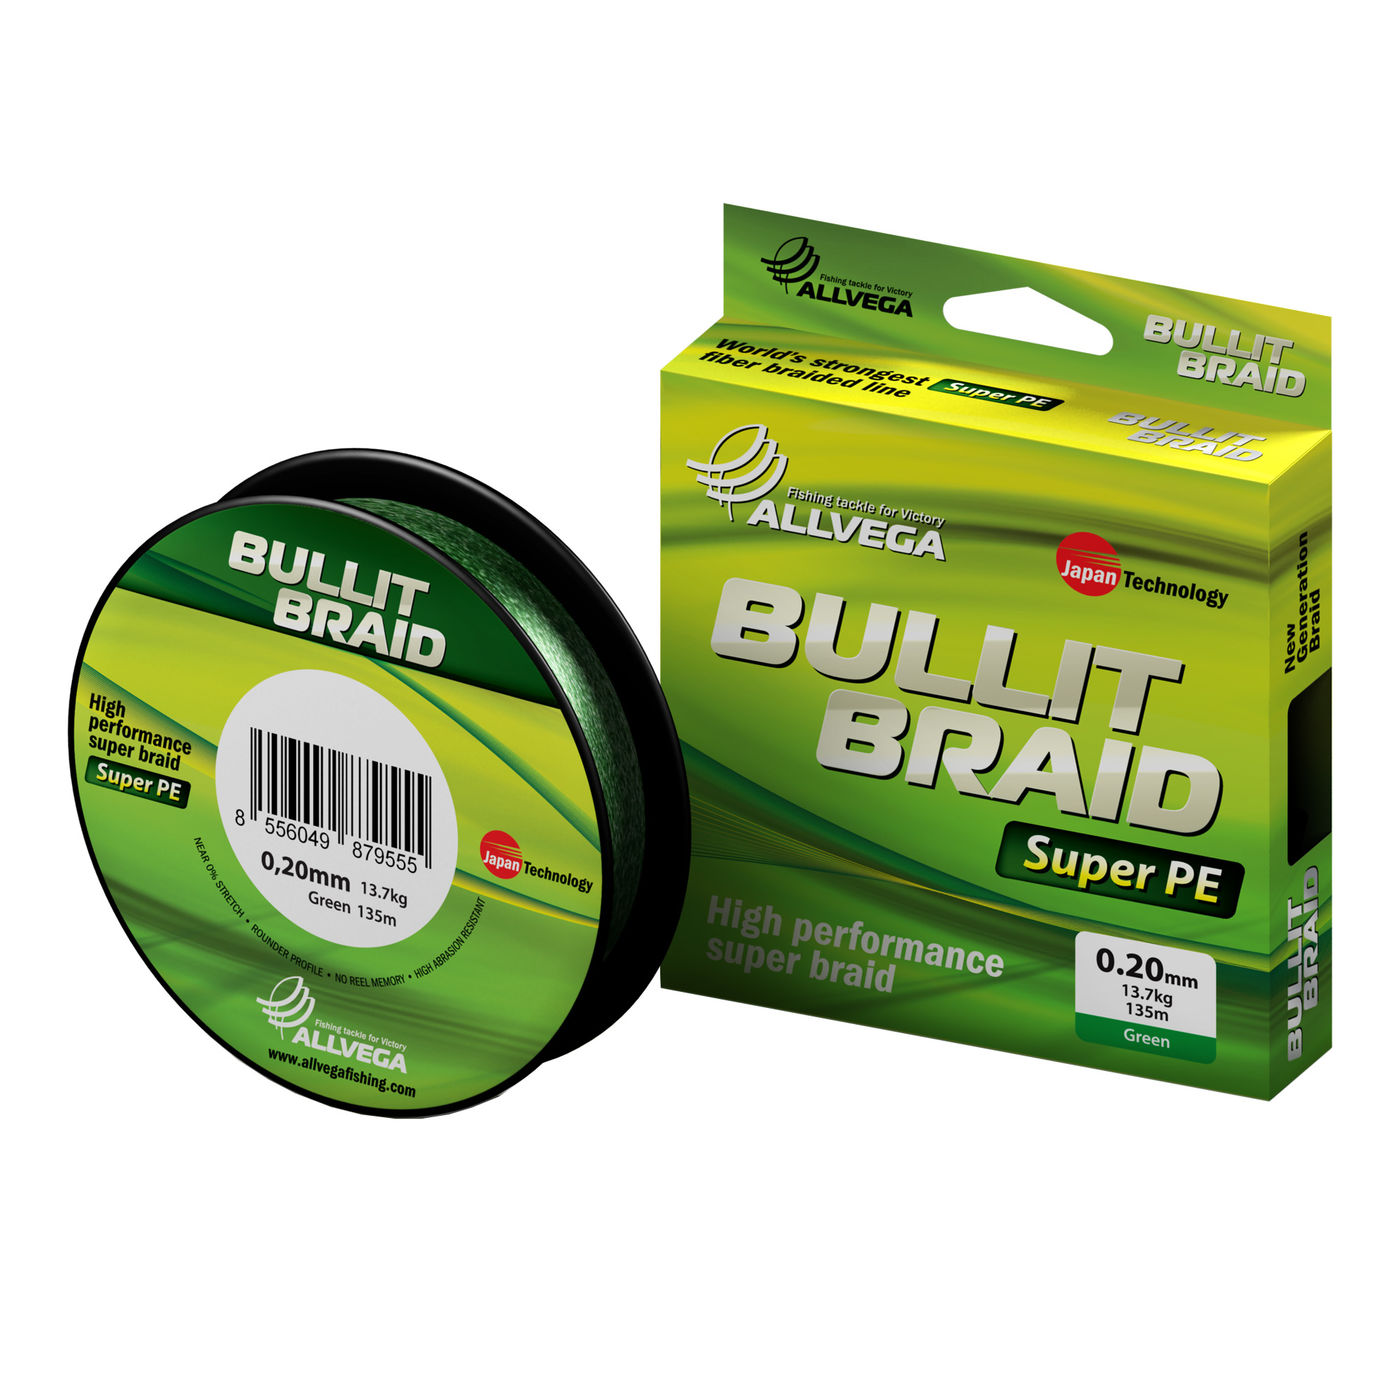 "Шнур плетёный ALLVEGA ""Bullit Braid"" 92м 0,16мм (10,2кг) 8556049879319"